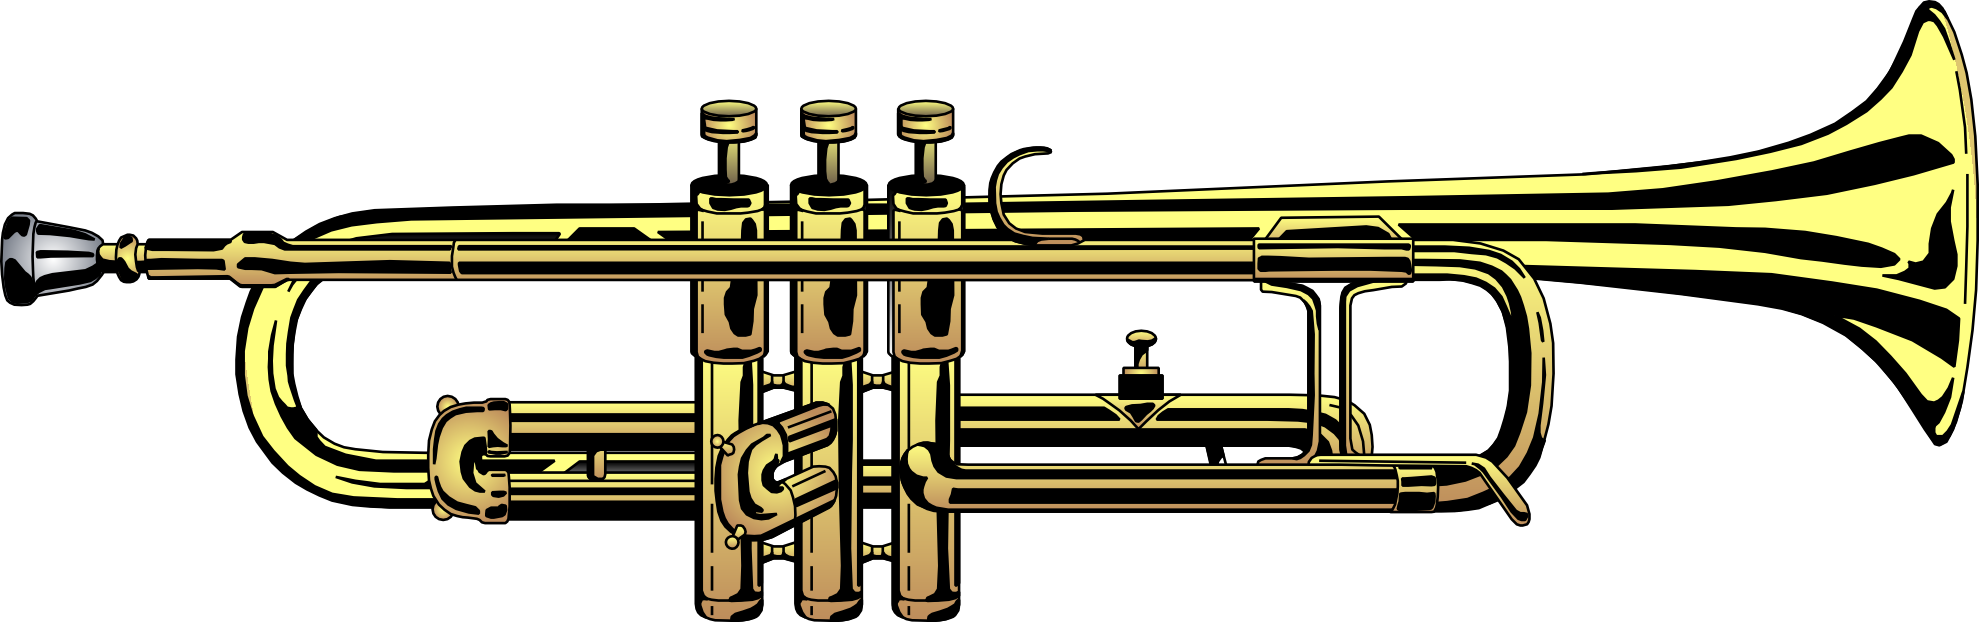 Medieval clipart trumpet. Free images download clip